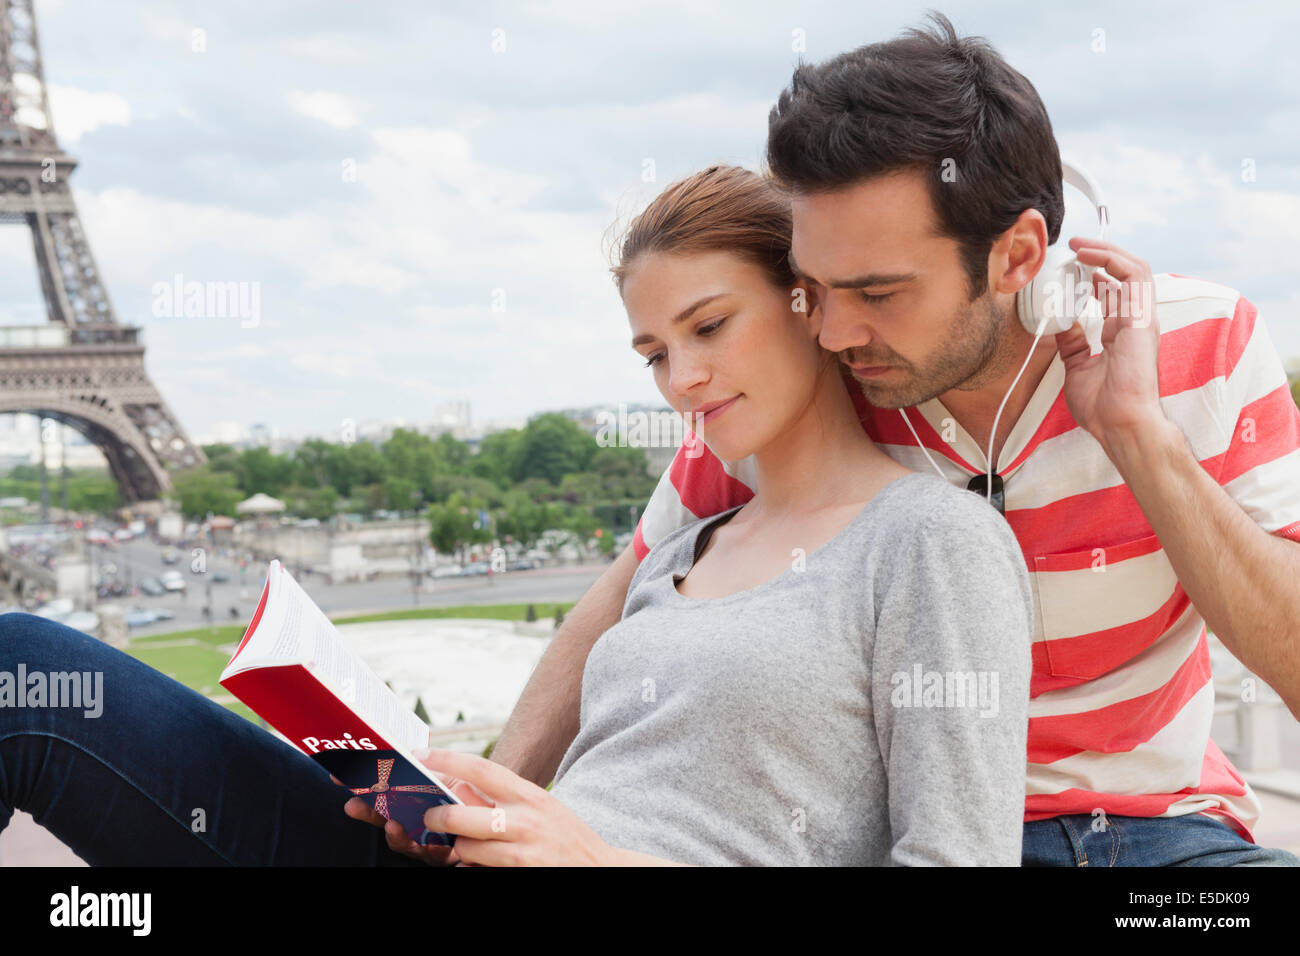 France, Paris, portrait of couple with travel guide and headphones in front of Eiffel Tower - Stock Image